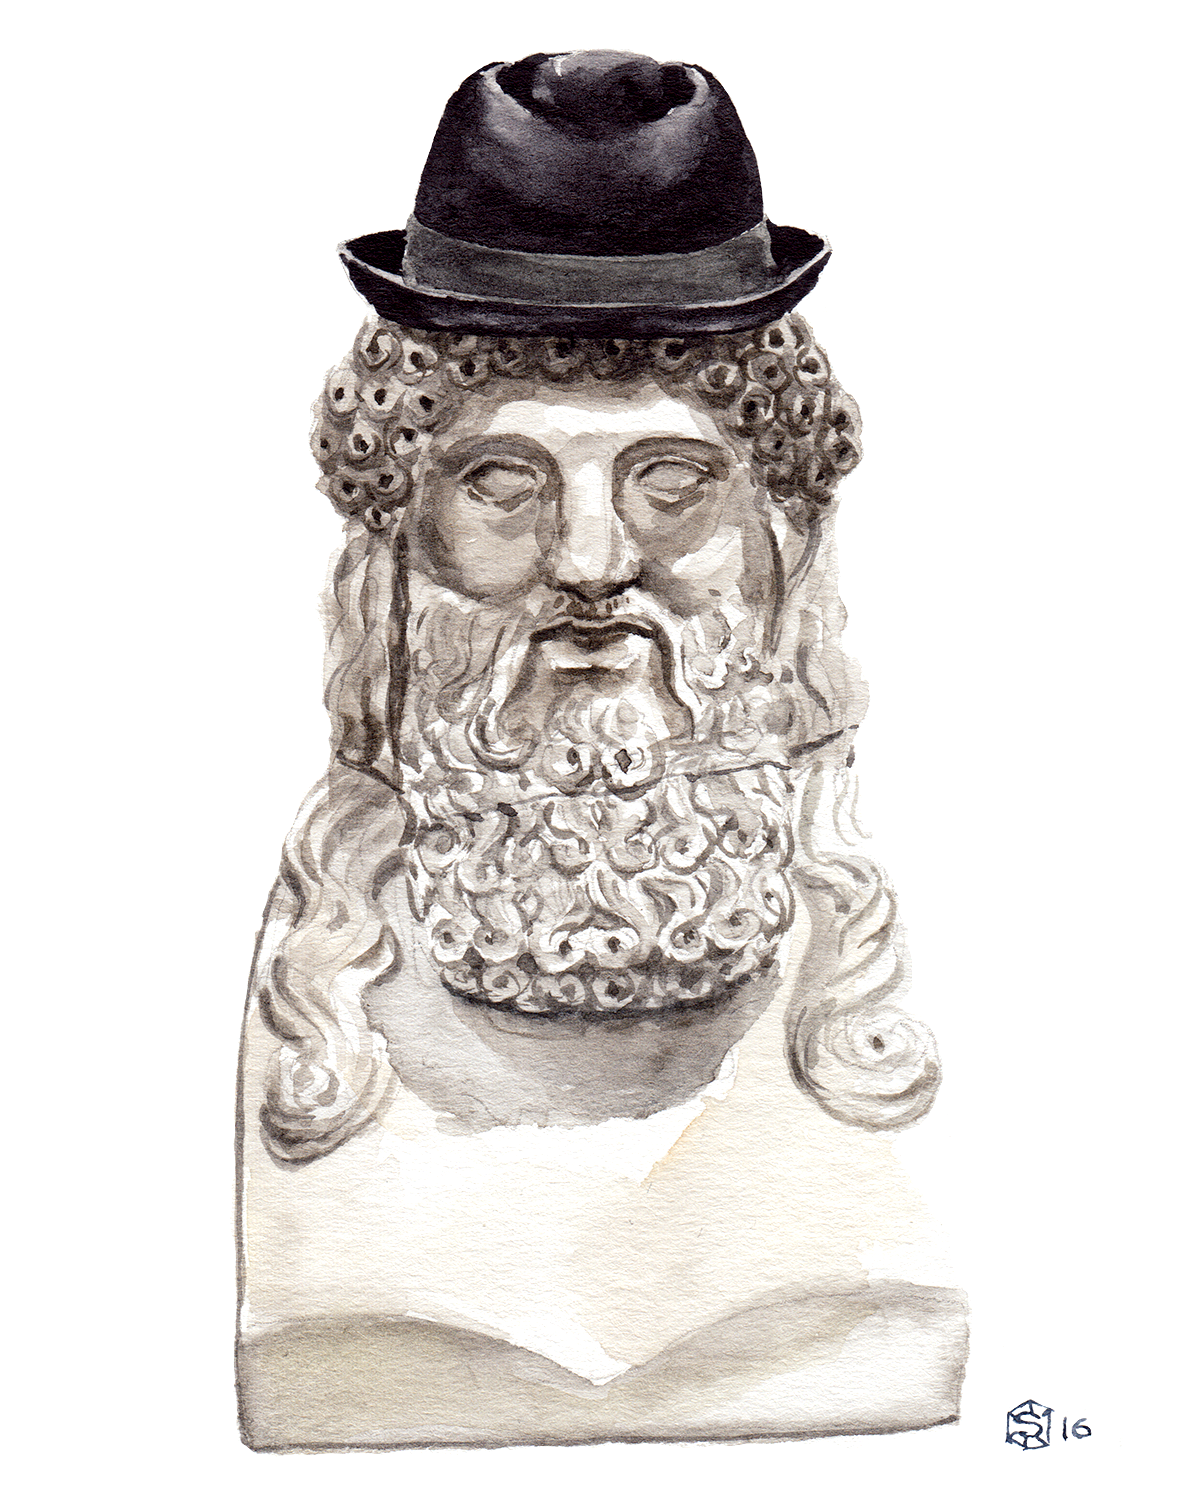 Menswear Illustration of a sculptural bust of a Greco-Roman, bearded man wearing an Express fedora